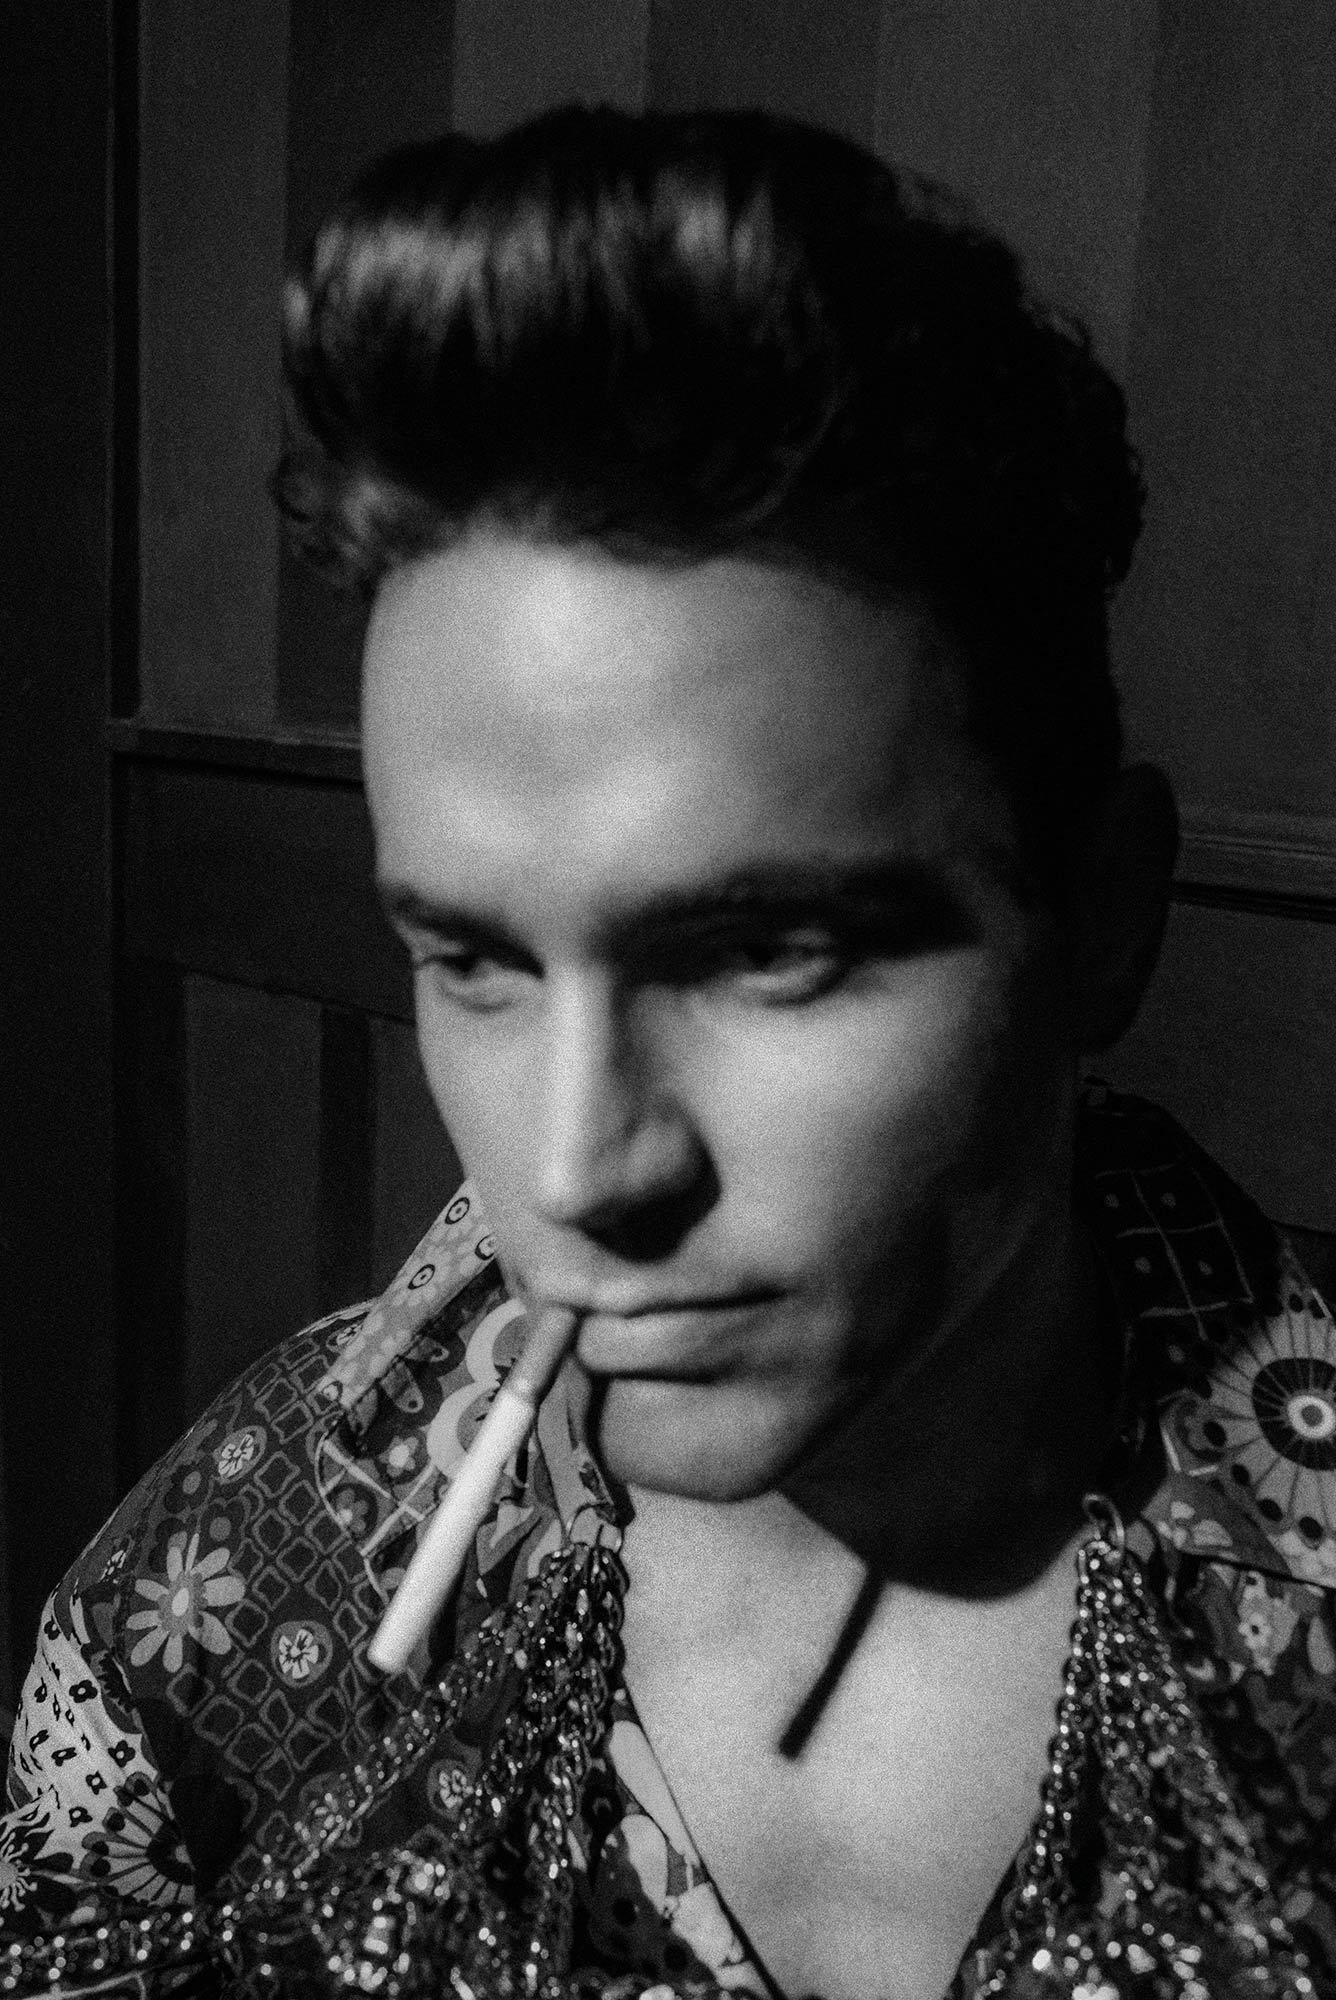 A Photo of Matt Bomer by artist danny Roberts for lady gaga v magazine shoot by Chadwick Tyler American